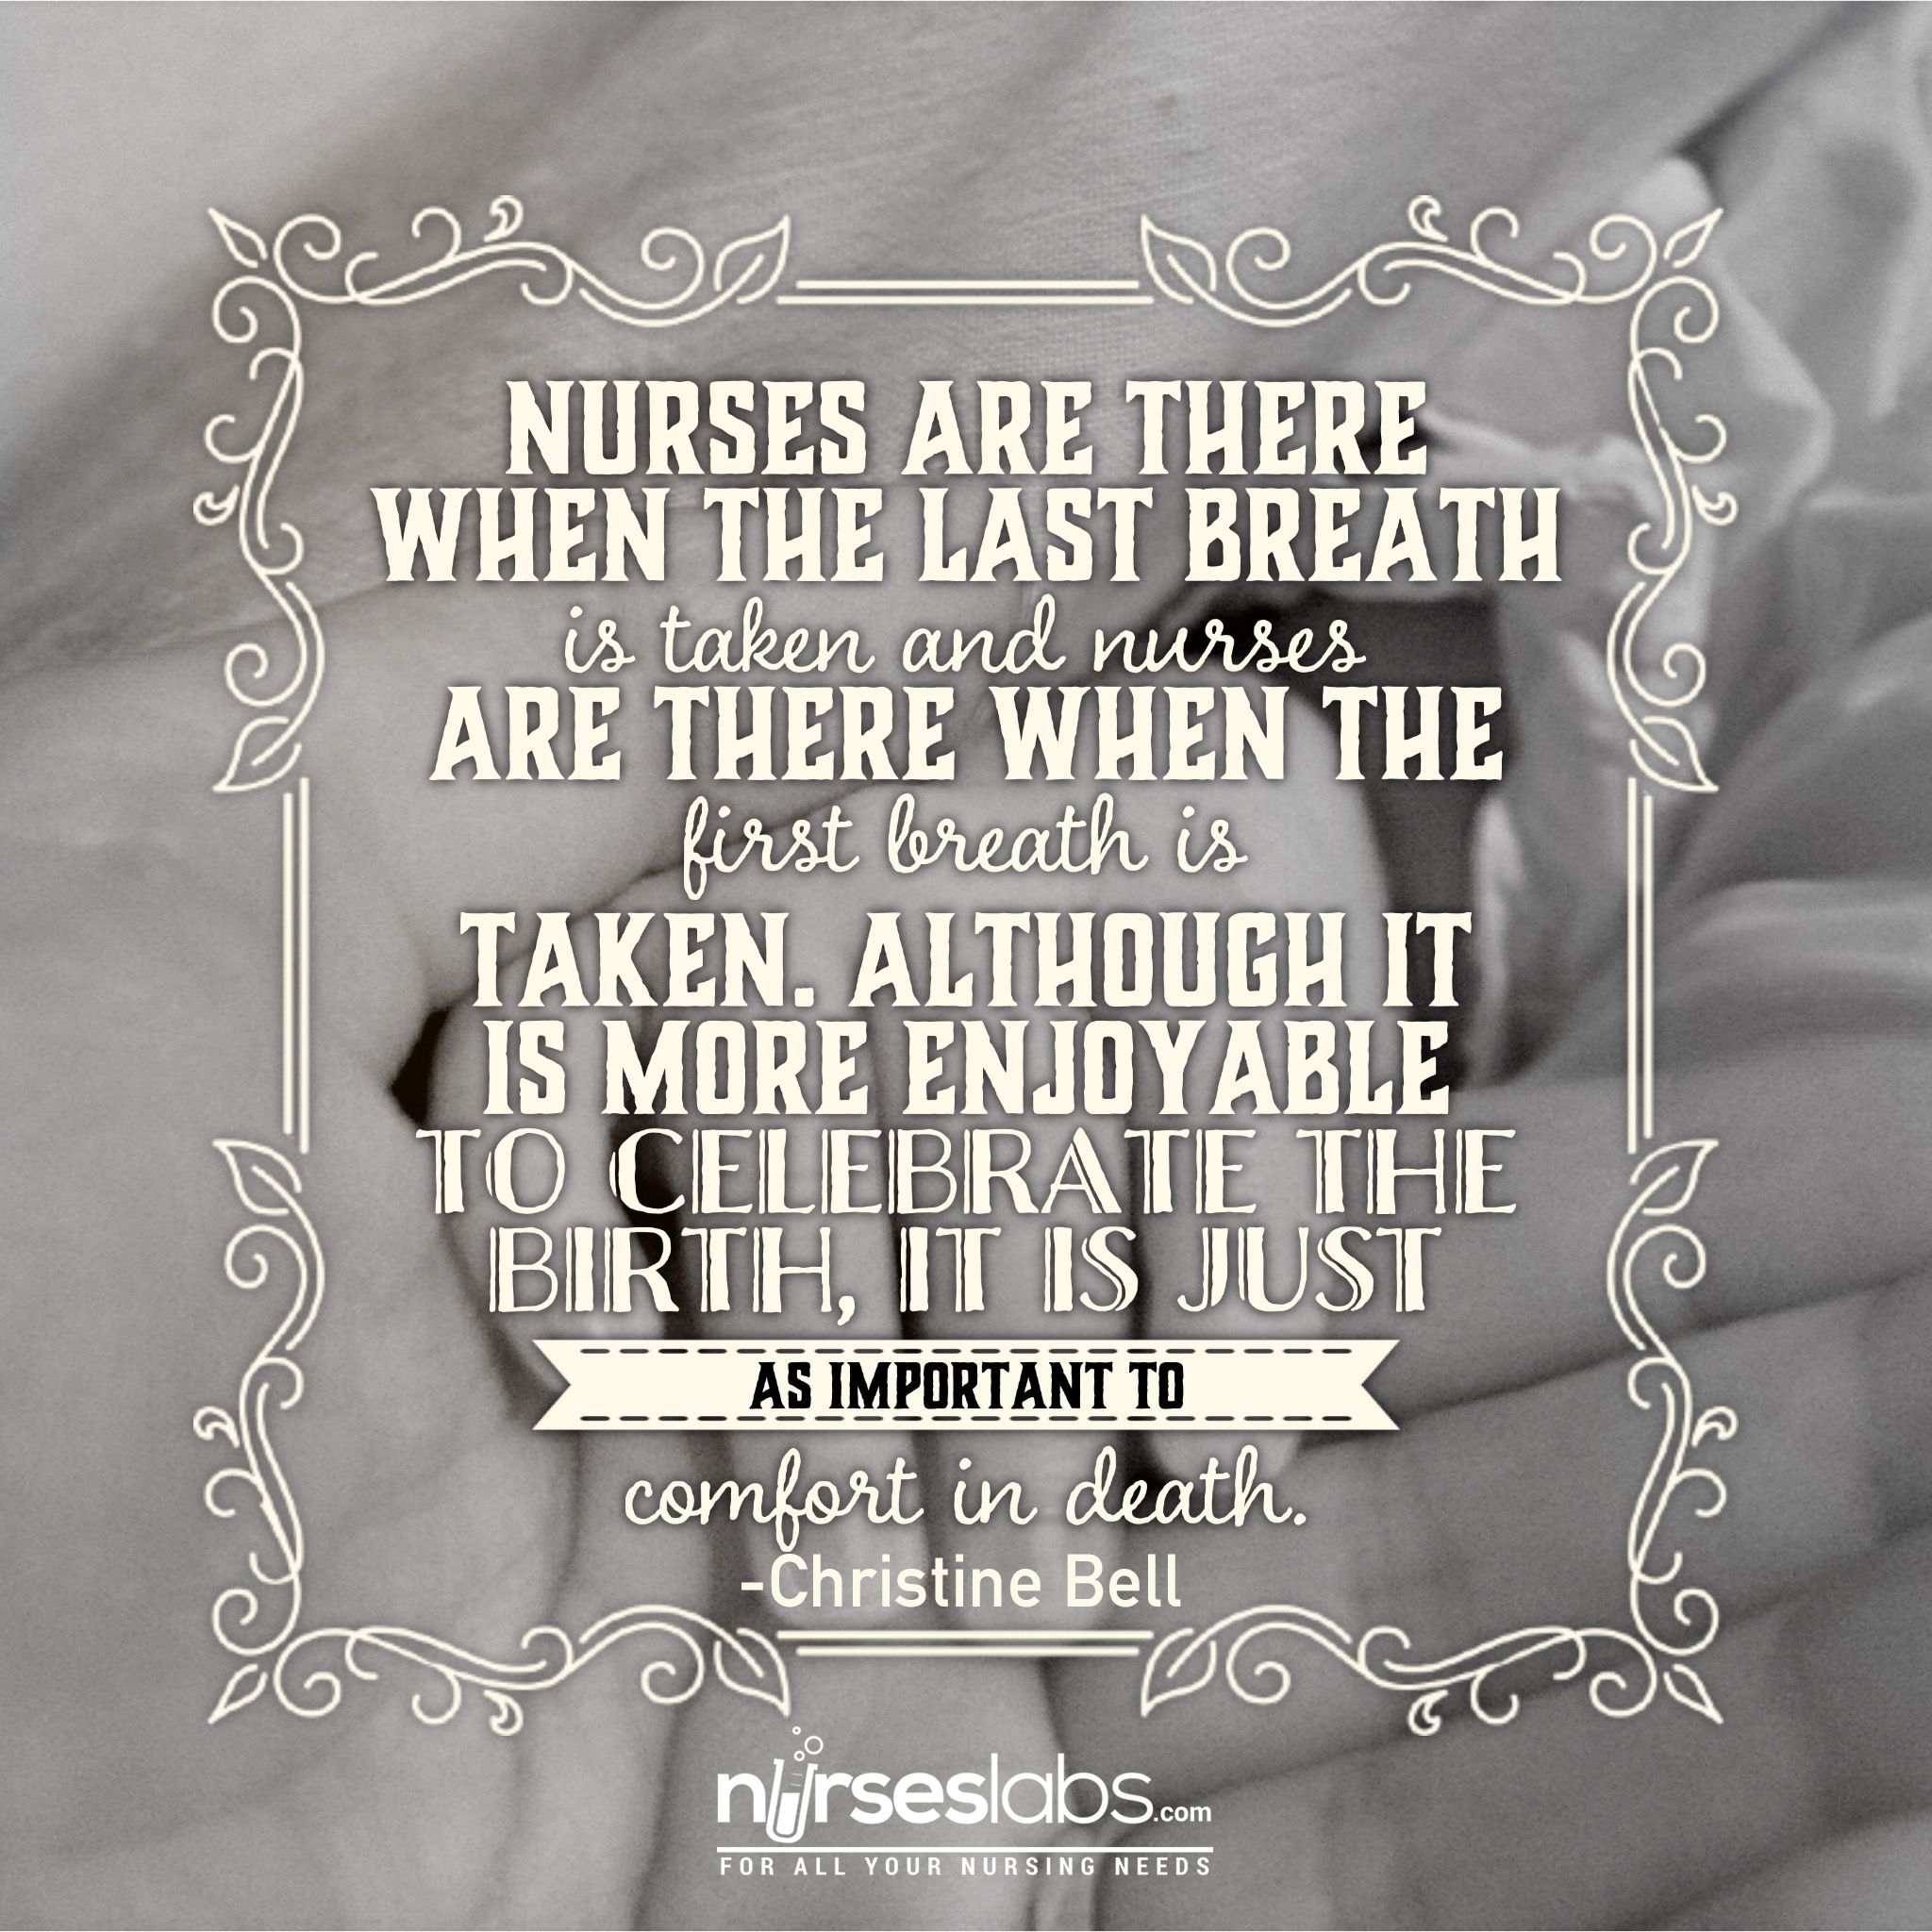 Quotes Inspirational Nurse Humor: Pin By Nurseslabs On Nursing Inspiration, Fun, And Humor